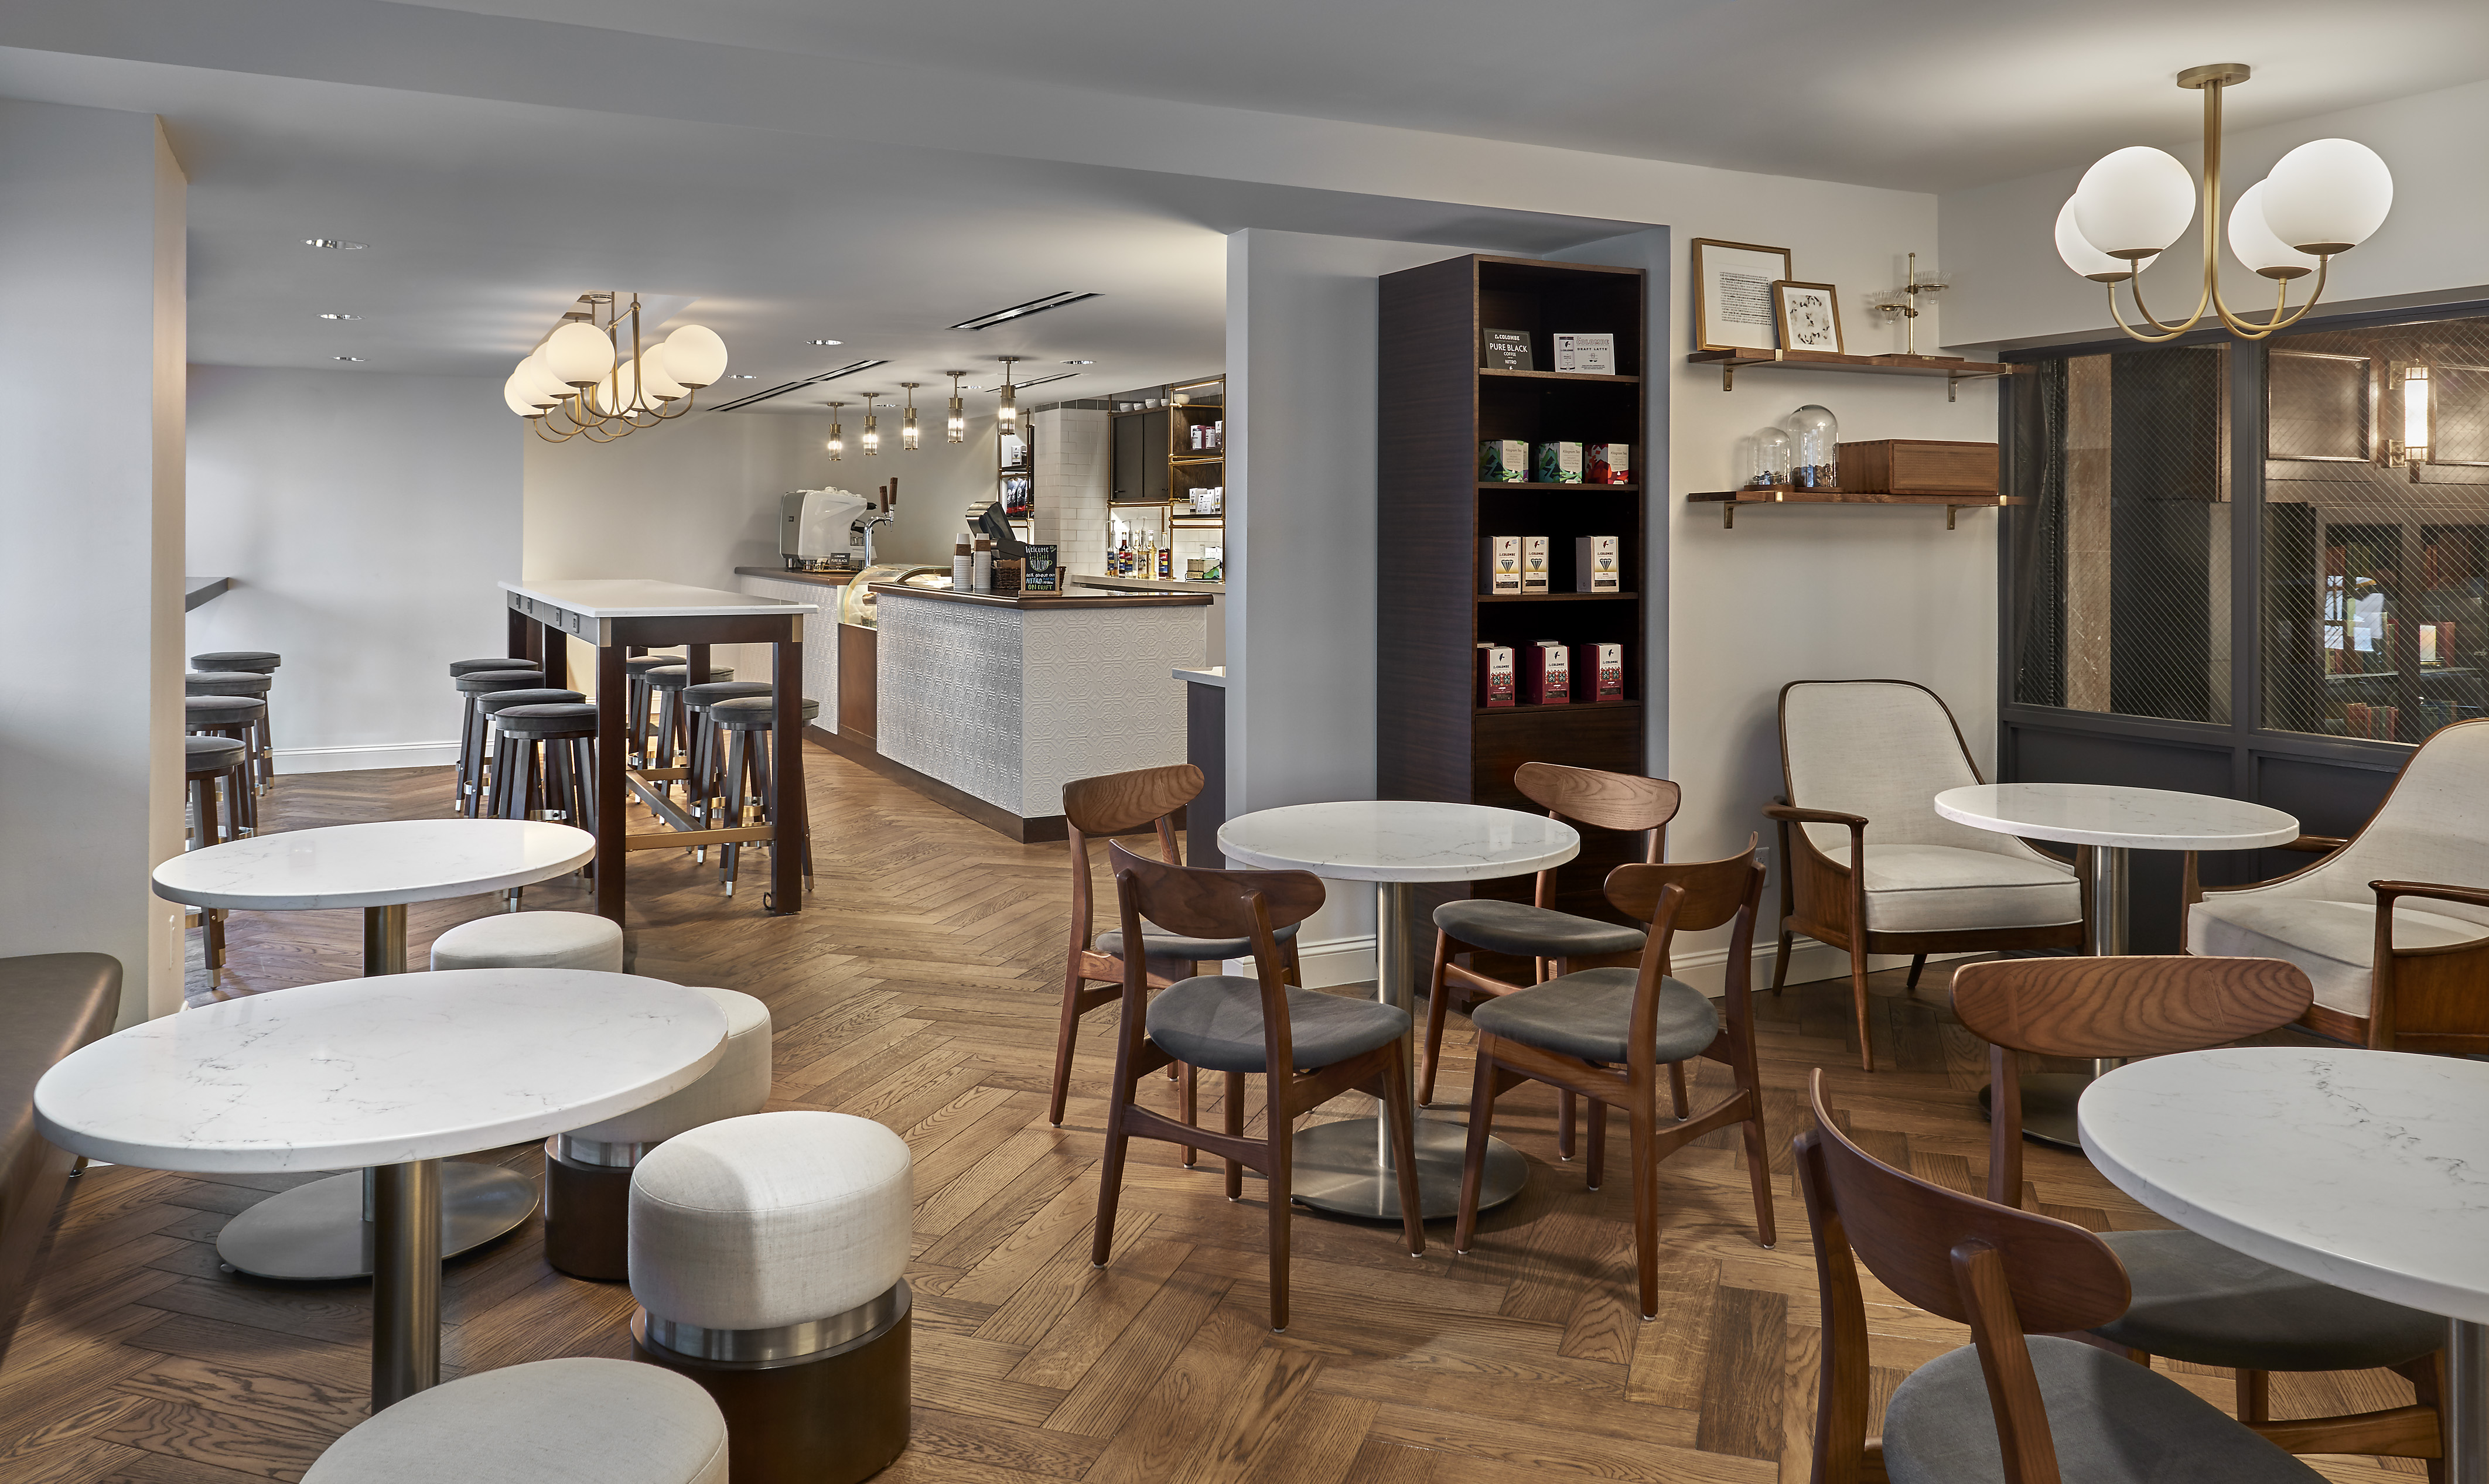 Mrm news bites hotel phillips debuts 20m reno call for for Hotel espresso